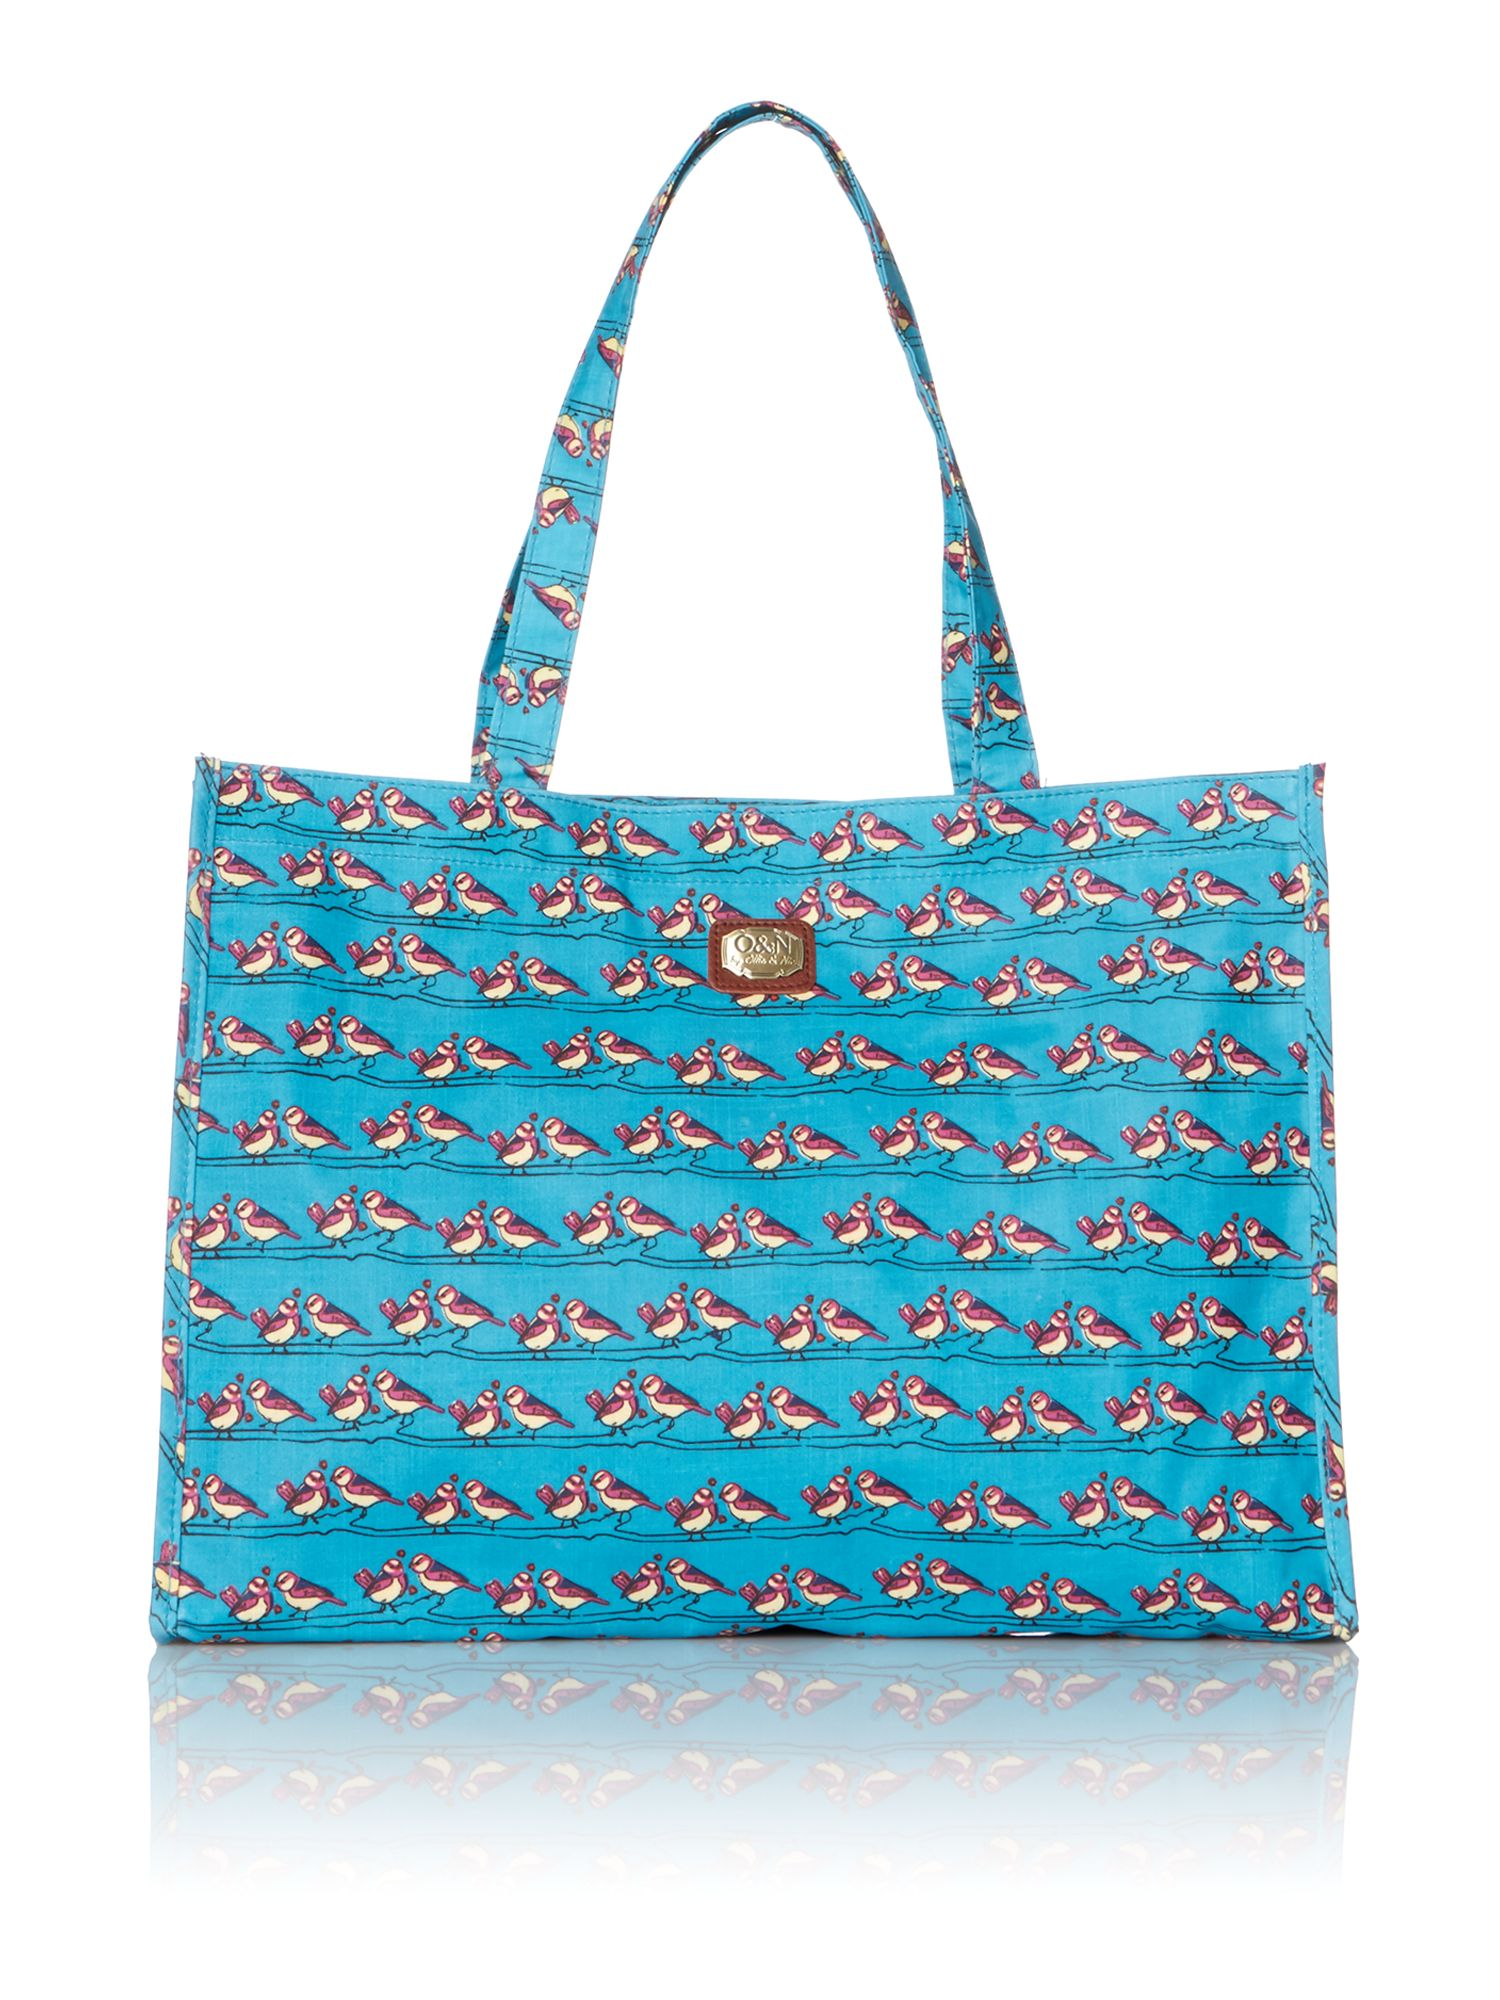 Love birds blue tote bag